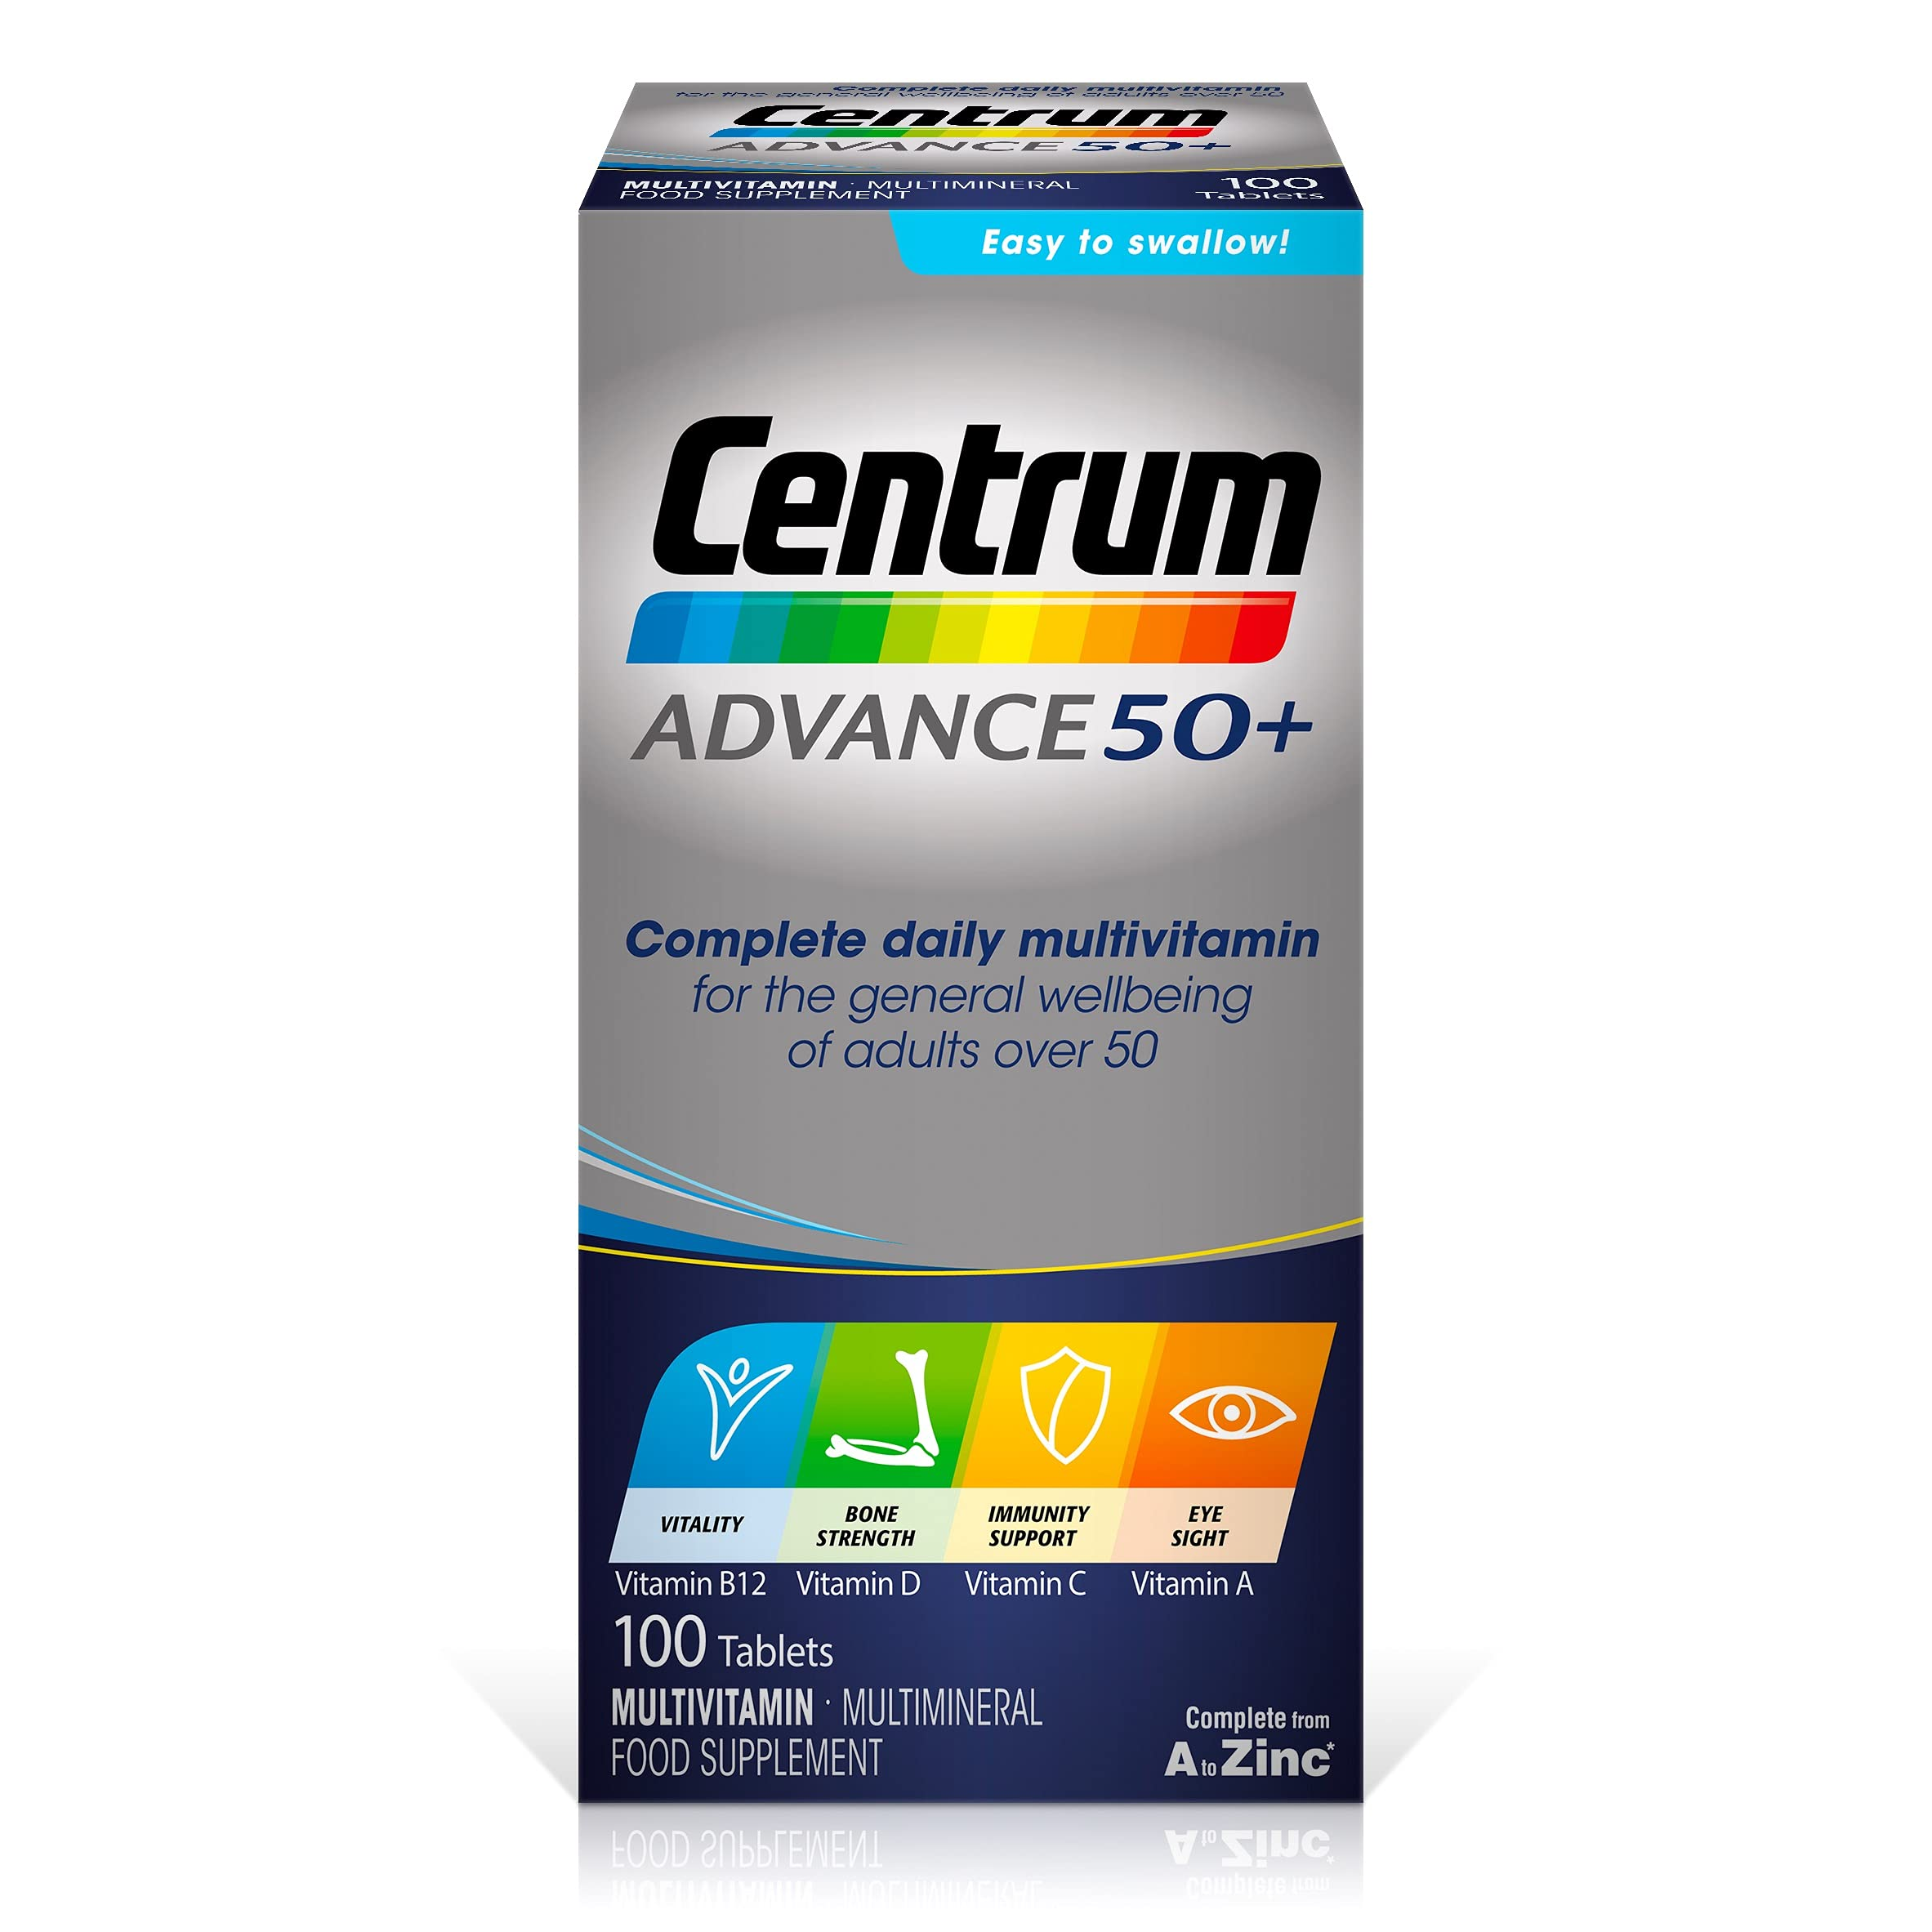 Centrum Advance 50+ Multivitamin & Mineral Tablets, 24 Essential Nutrients Including Vitamin D, Complete Multivitamin Tablets, 100 Tablets